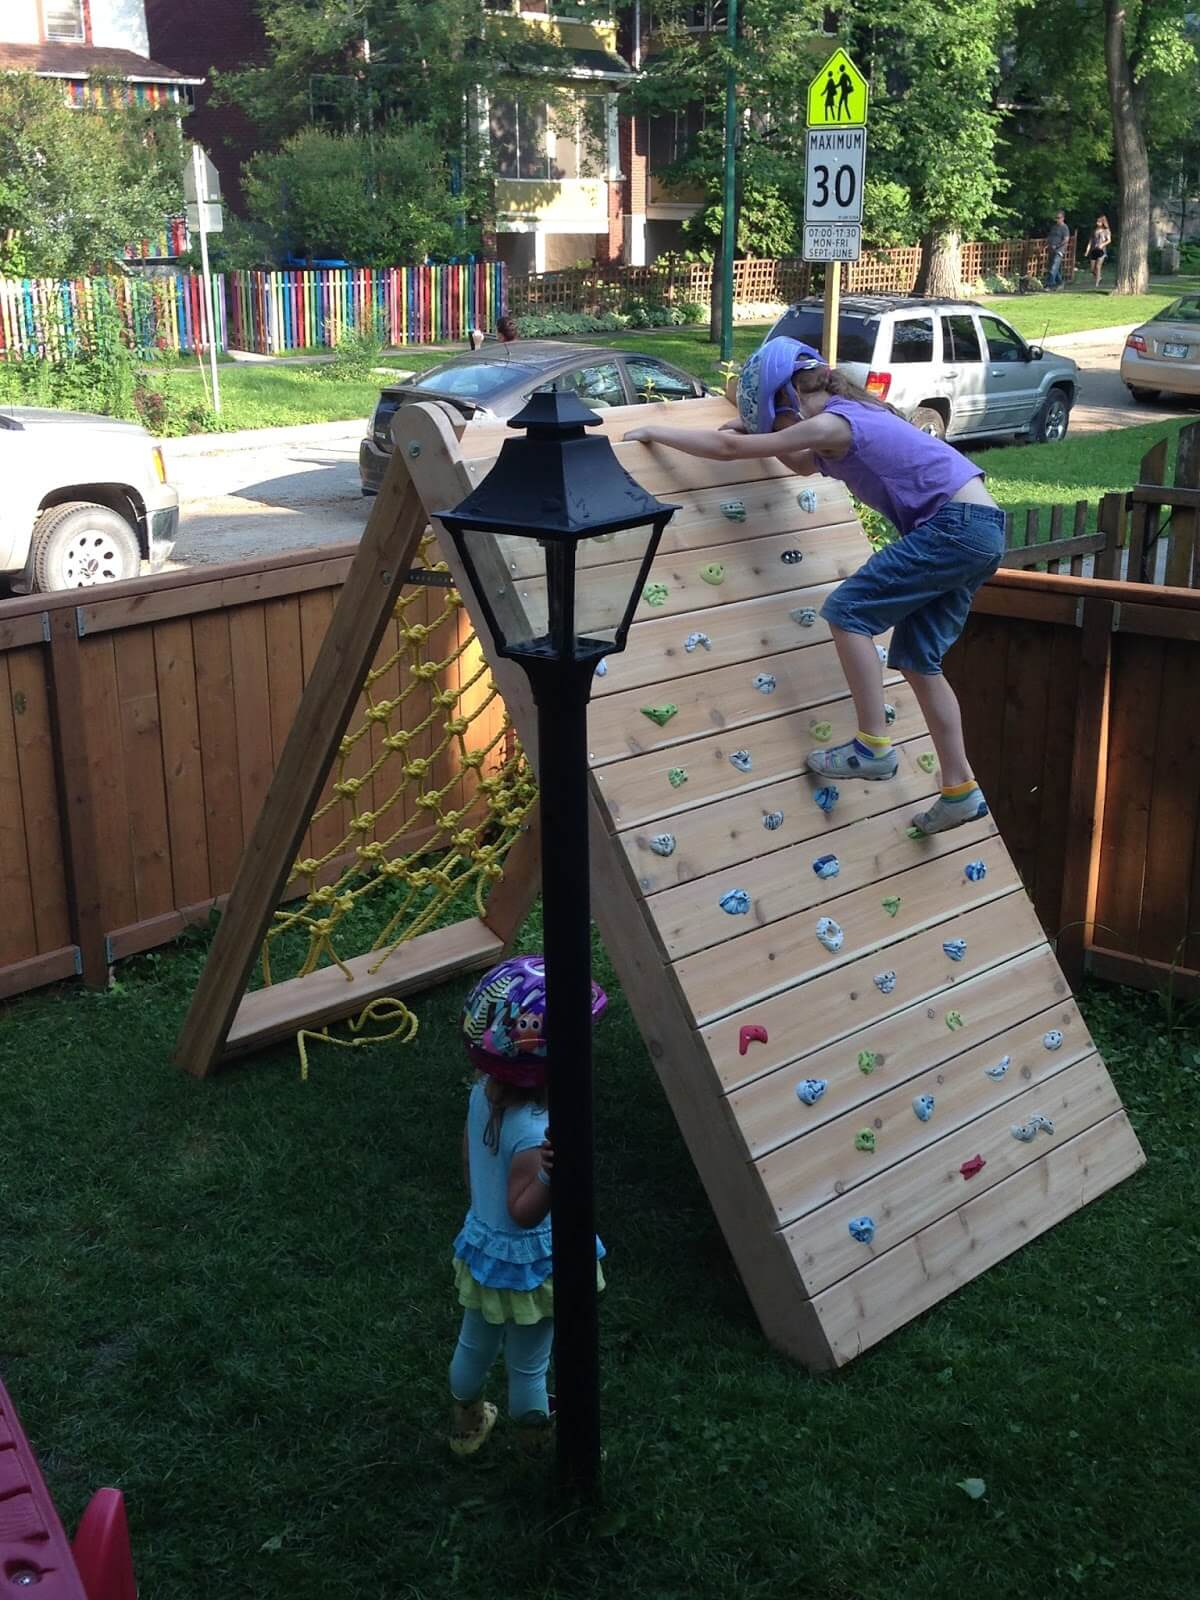 34 Best Diy Backyard Ideas And Designs For Kids In 2019 intended for 14 Genius Ways How to Improve Backyard Ideas For Kids